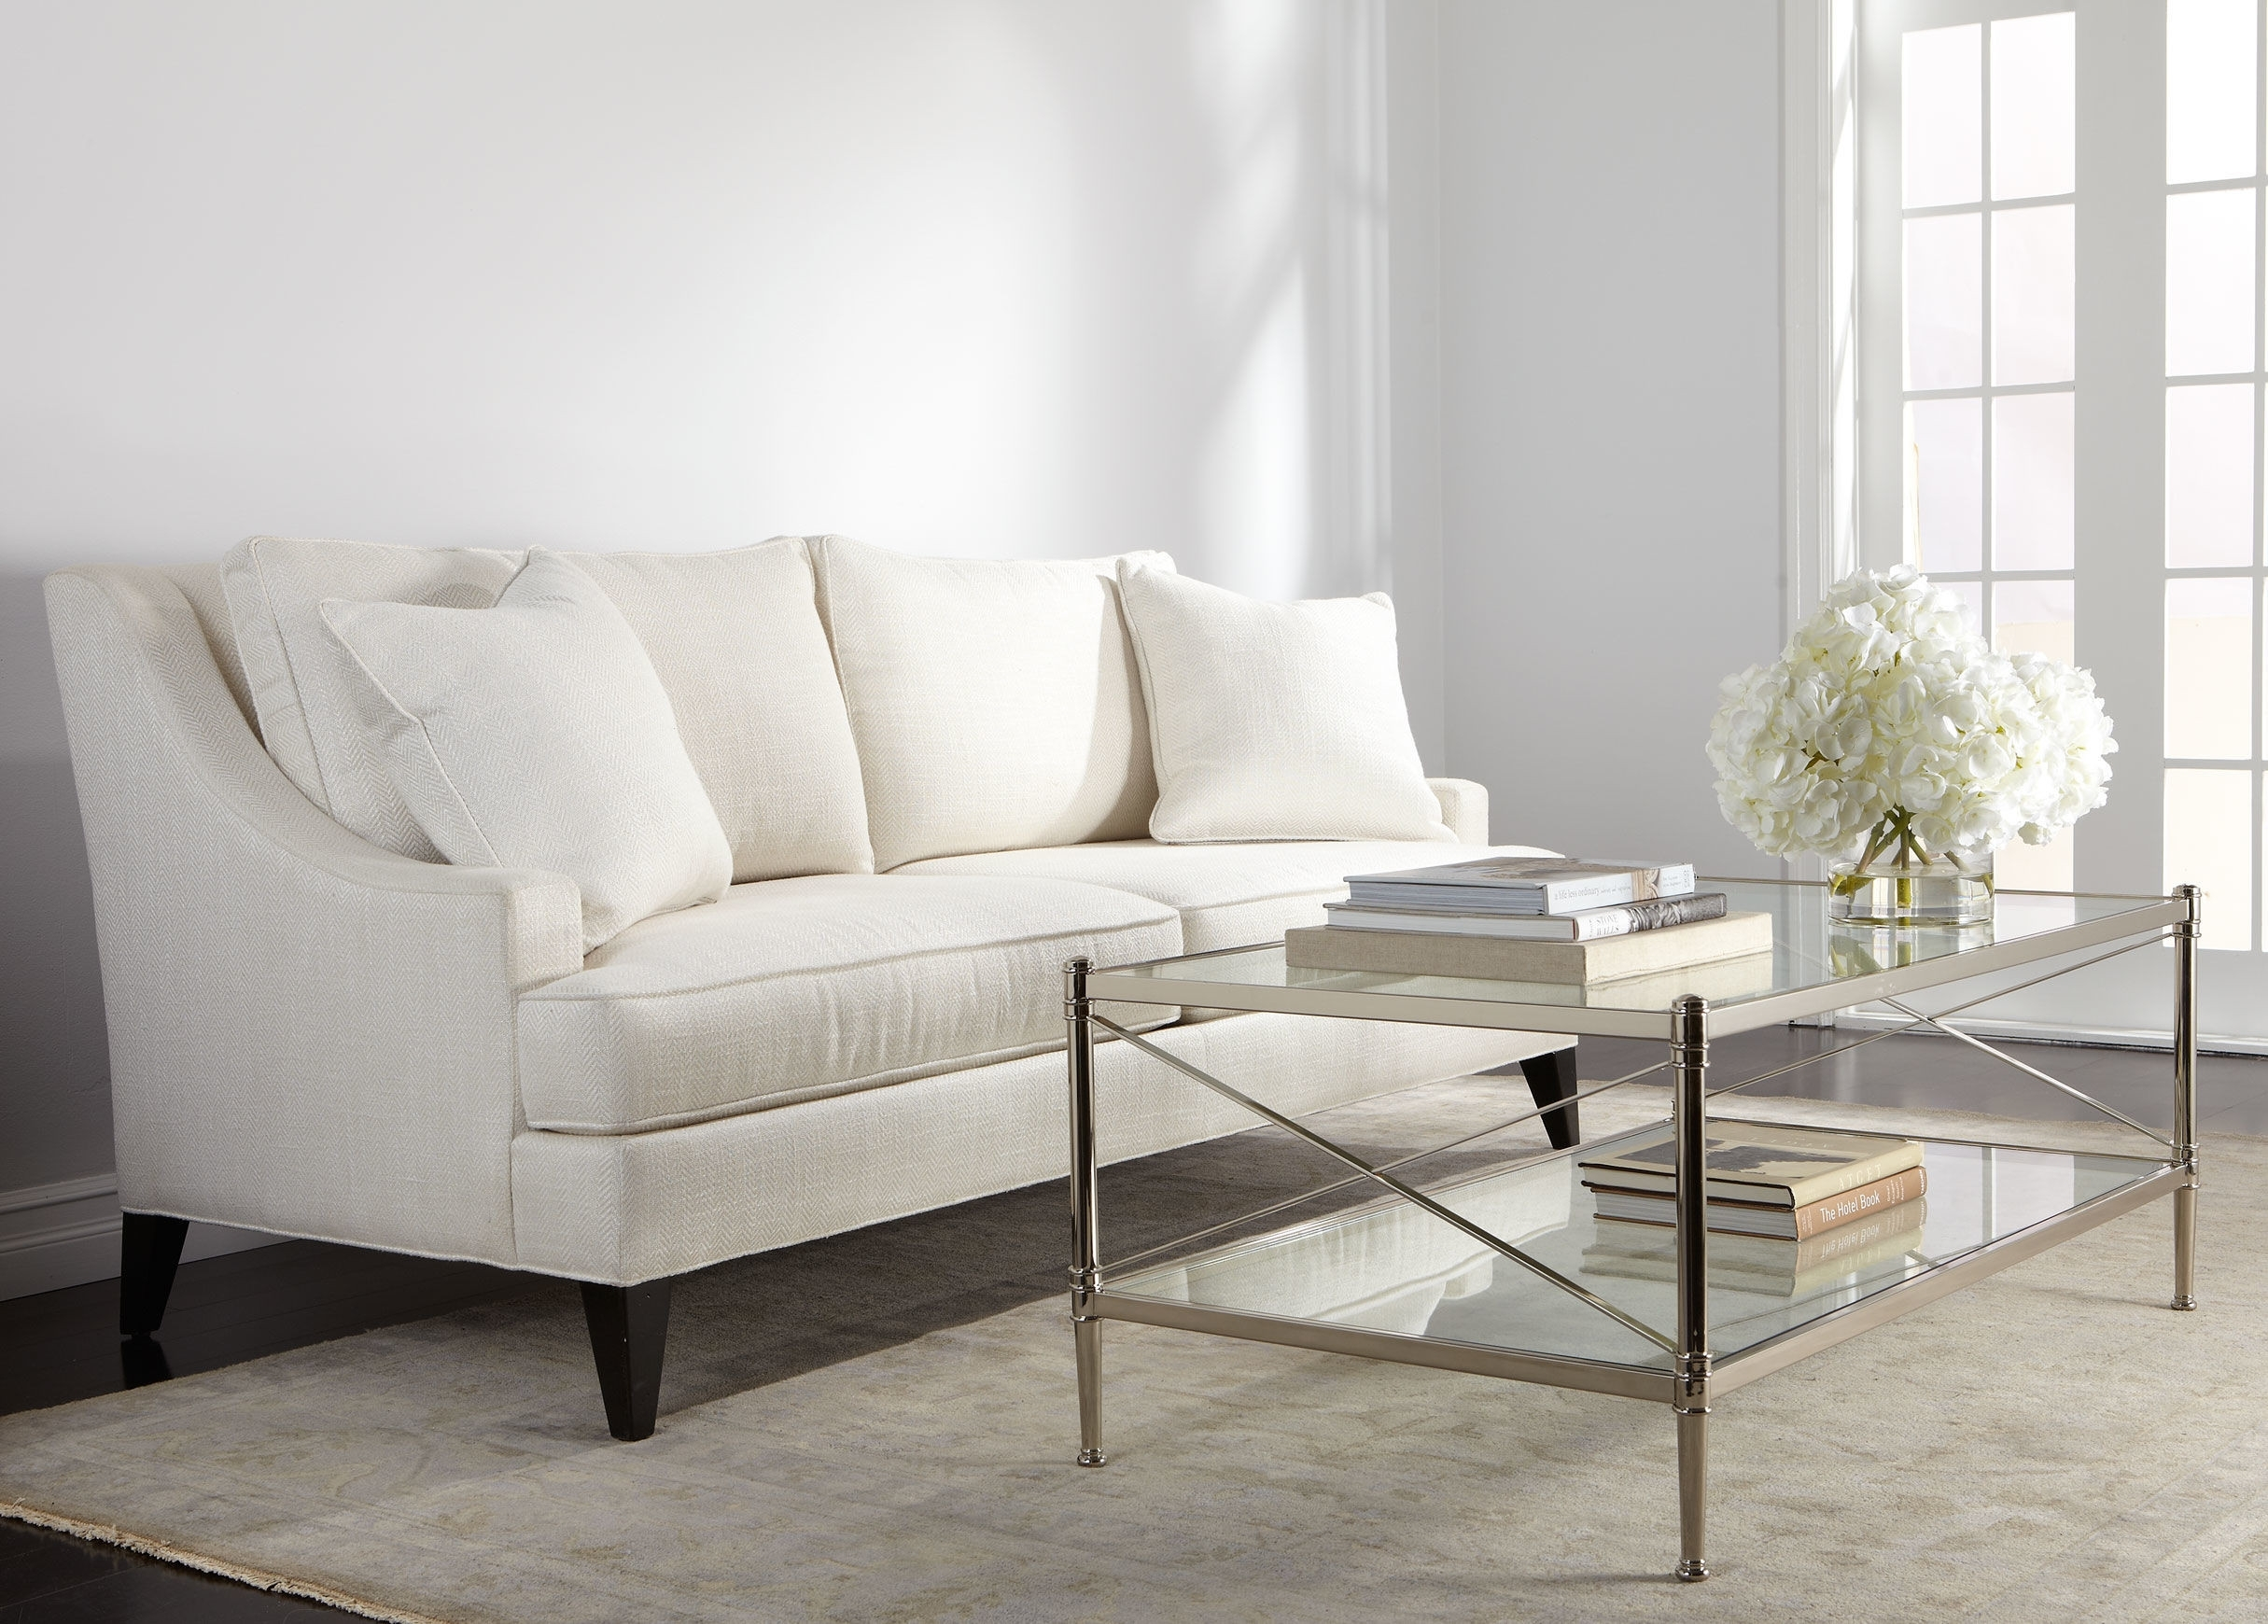 Furniture : Ethan Allen Down Filled Sofa Elegant Best Ethan Allen Inside Down Filled Sofas (Image 4 of 10)